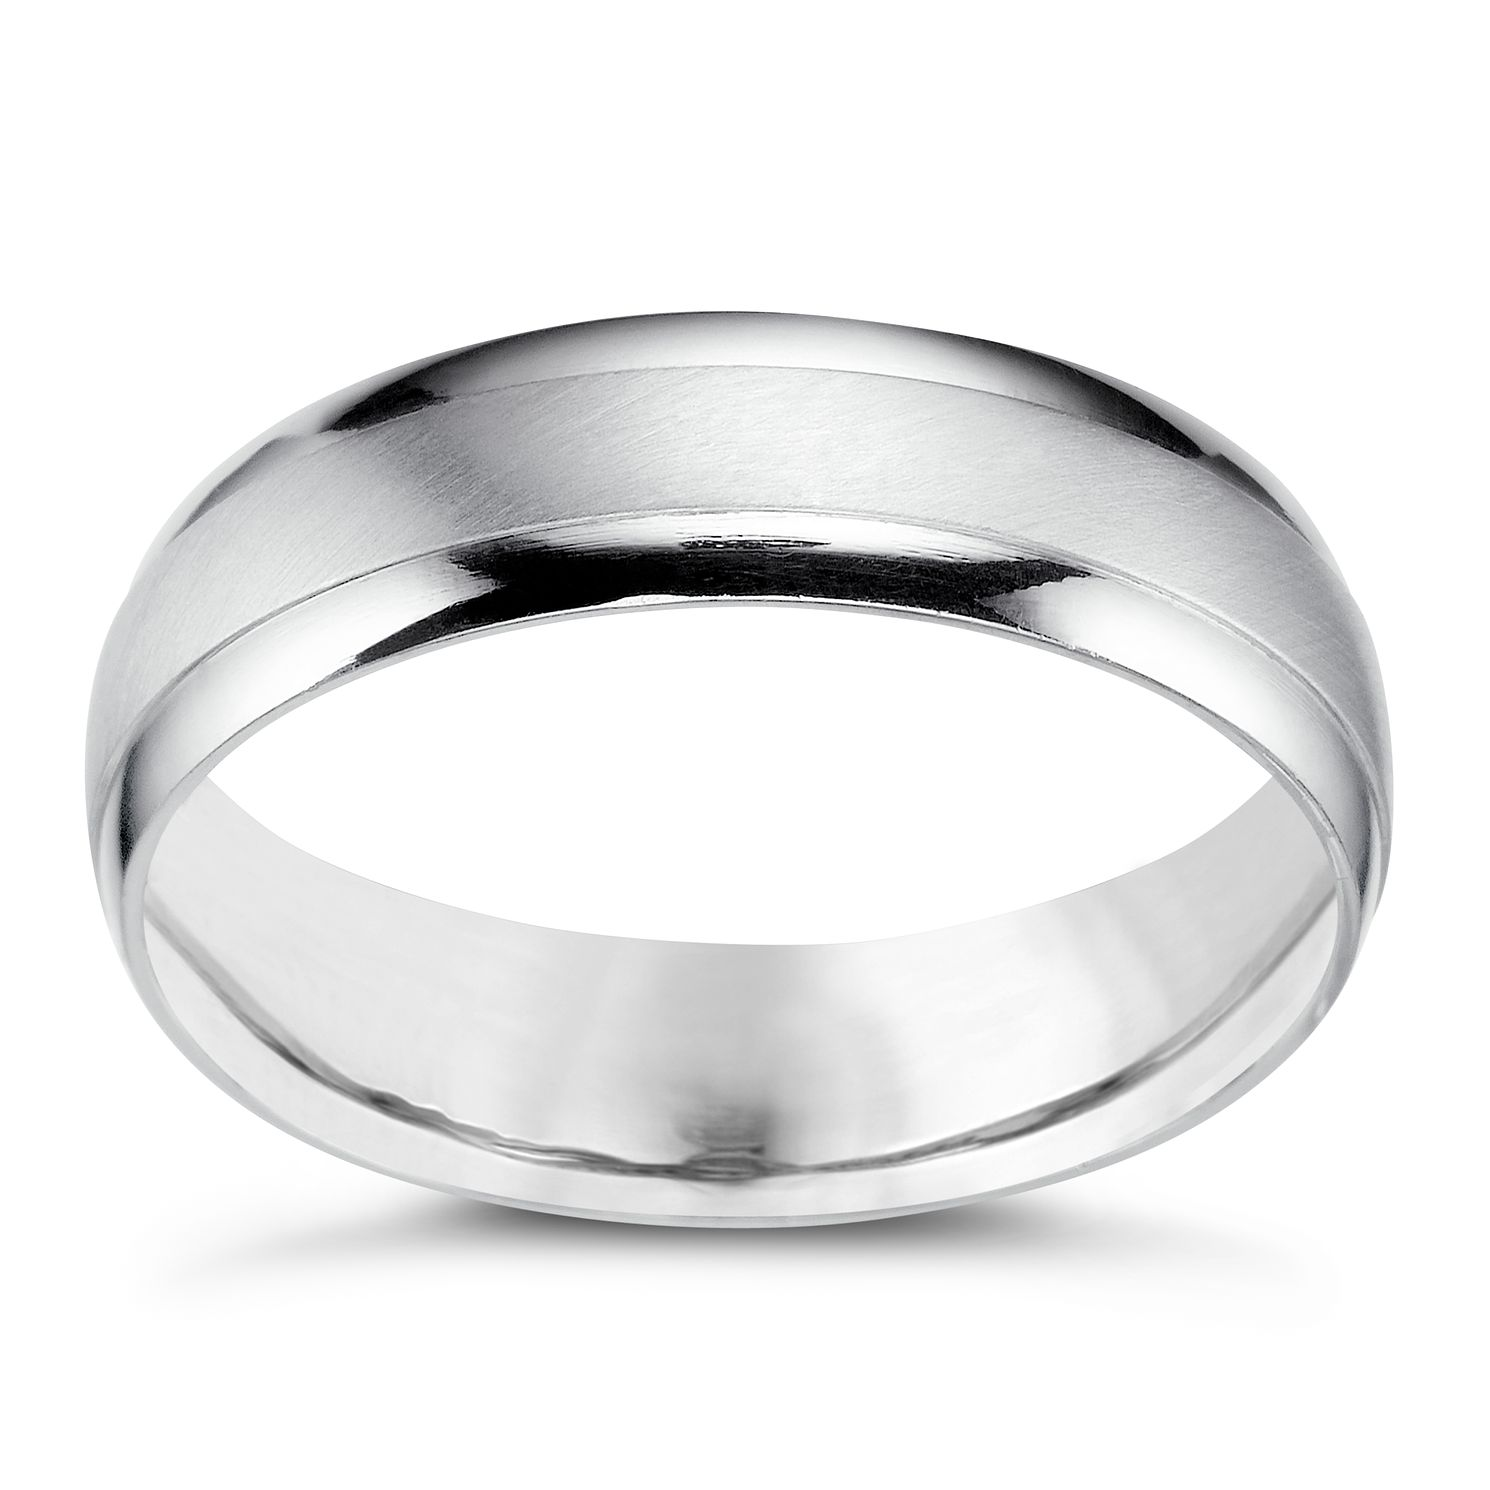 co tiffany mens platinum at rings wedding s jewelry j z for ring band sale milgrain men id platinium and